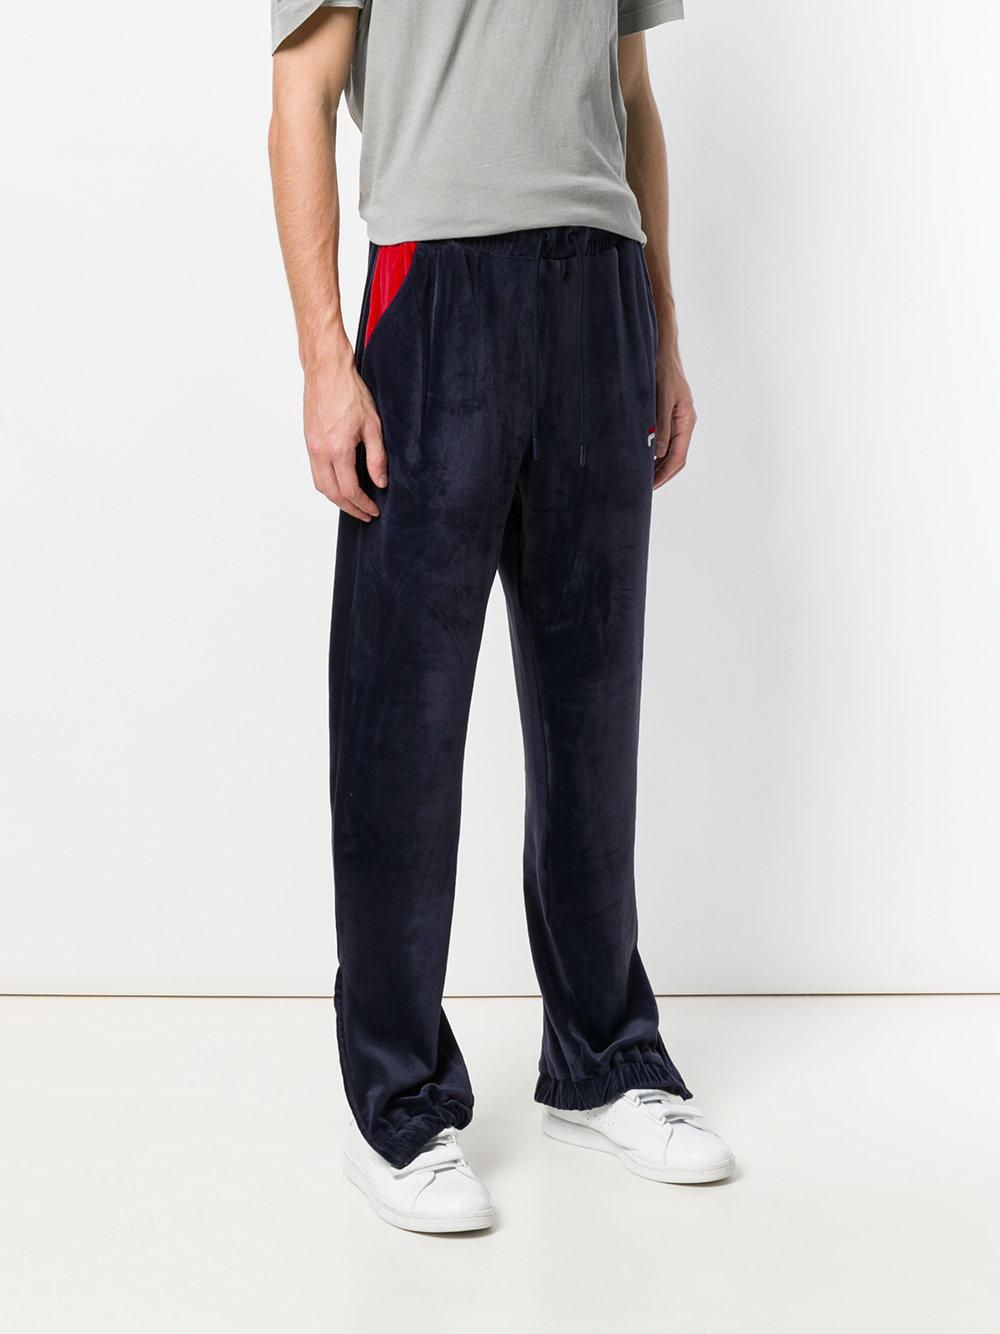 Buy Cheap Big Sale For Nice Online Dax velour track pants - Blue Fila Largest Supplier Cheap Online In China Discount Outlet Store EglClfNyM